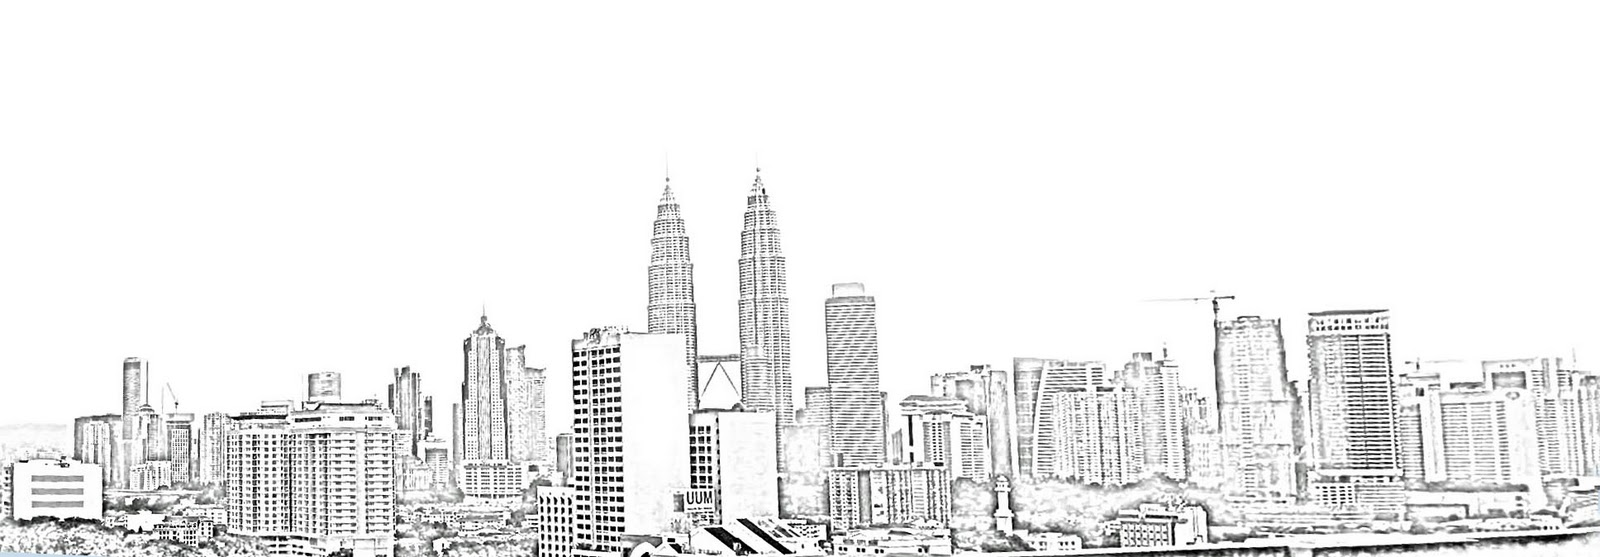 Drawn skyline city landscape Skyline silhouette Line city Research